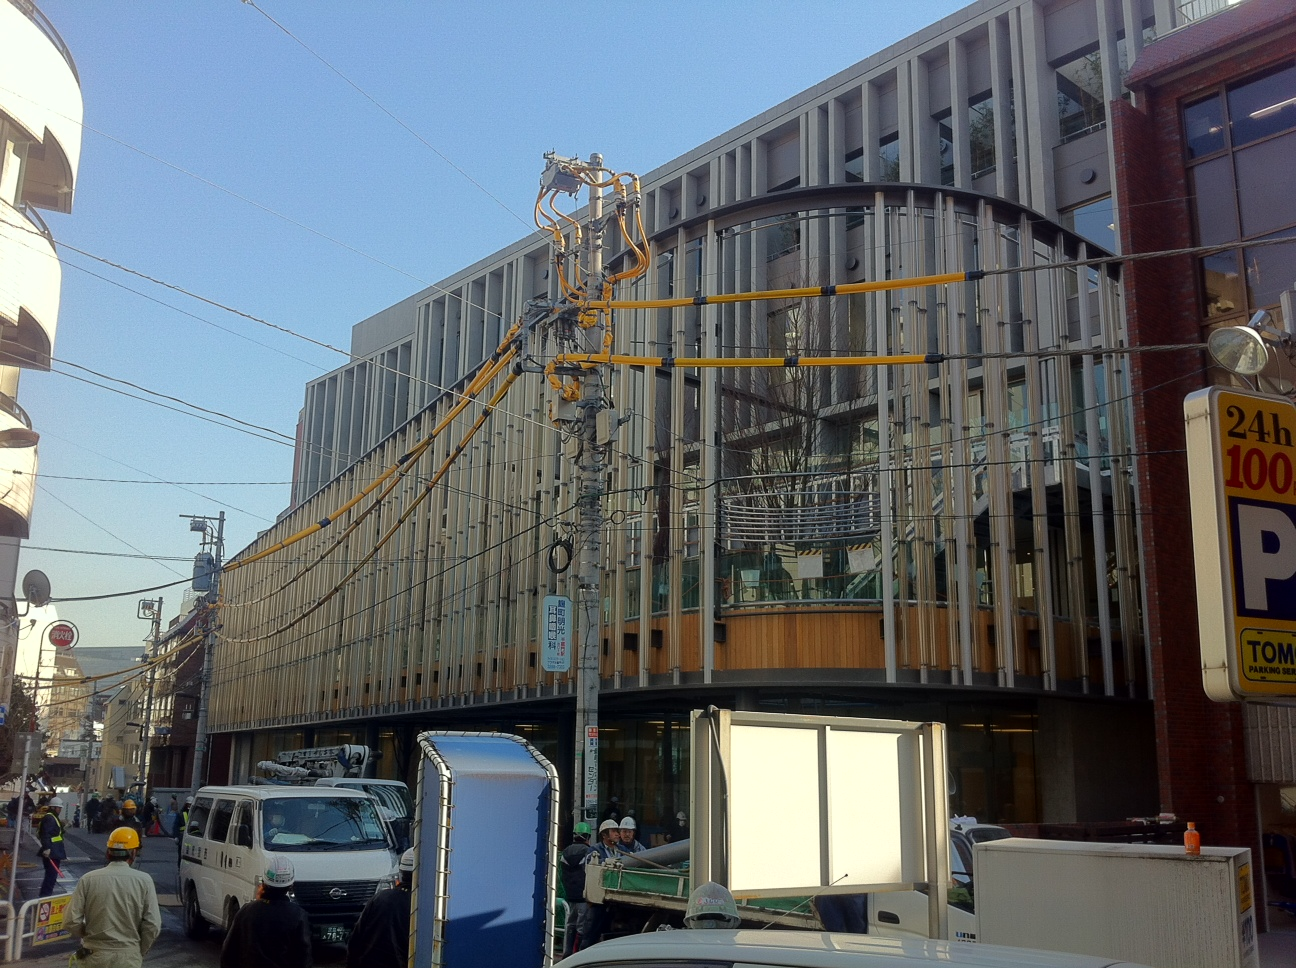 Josai University, Kojimachi under construction.